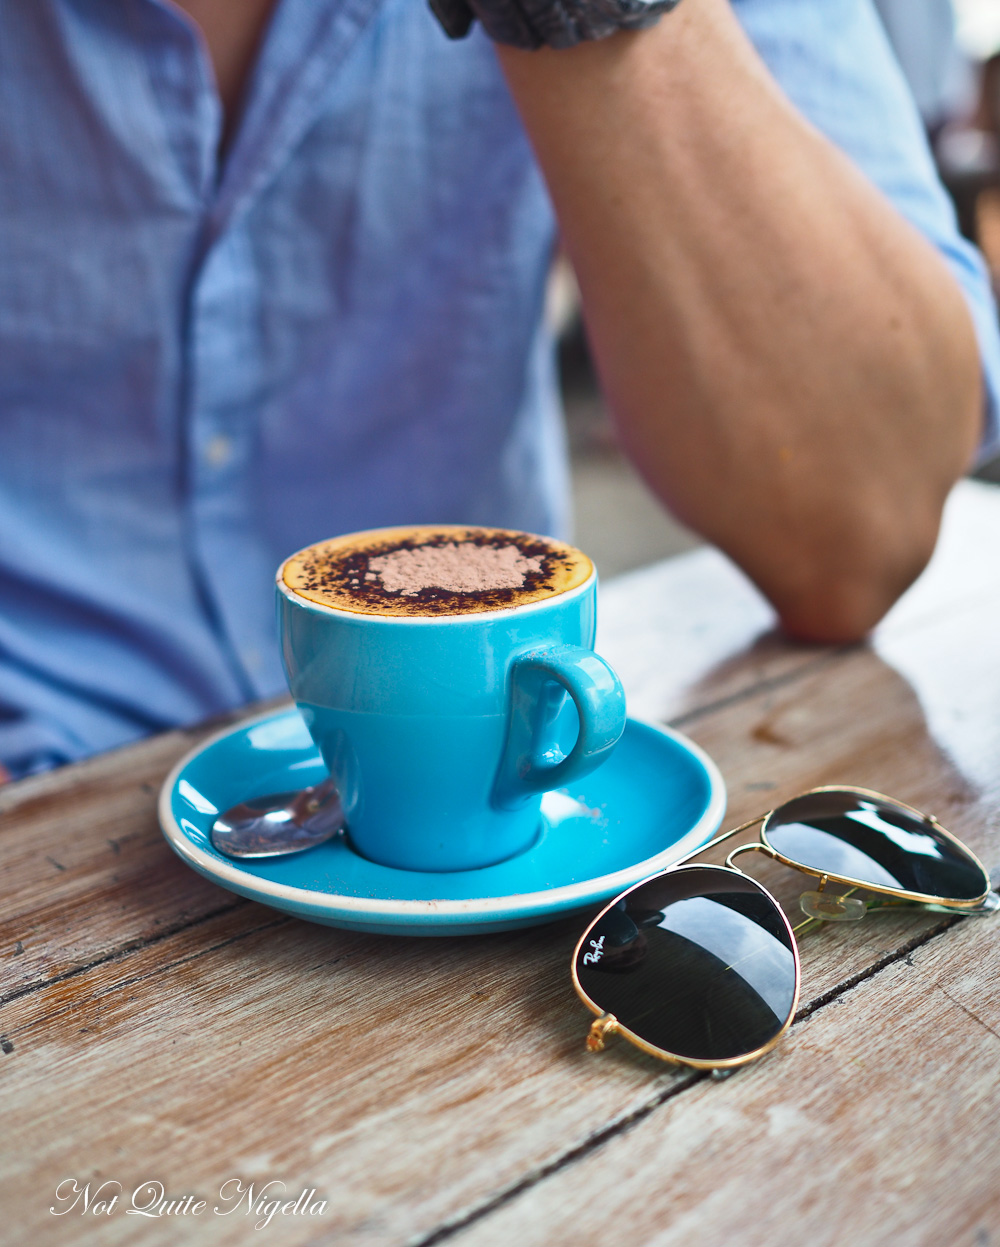 Bondi Beach Best Cafes